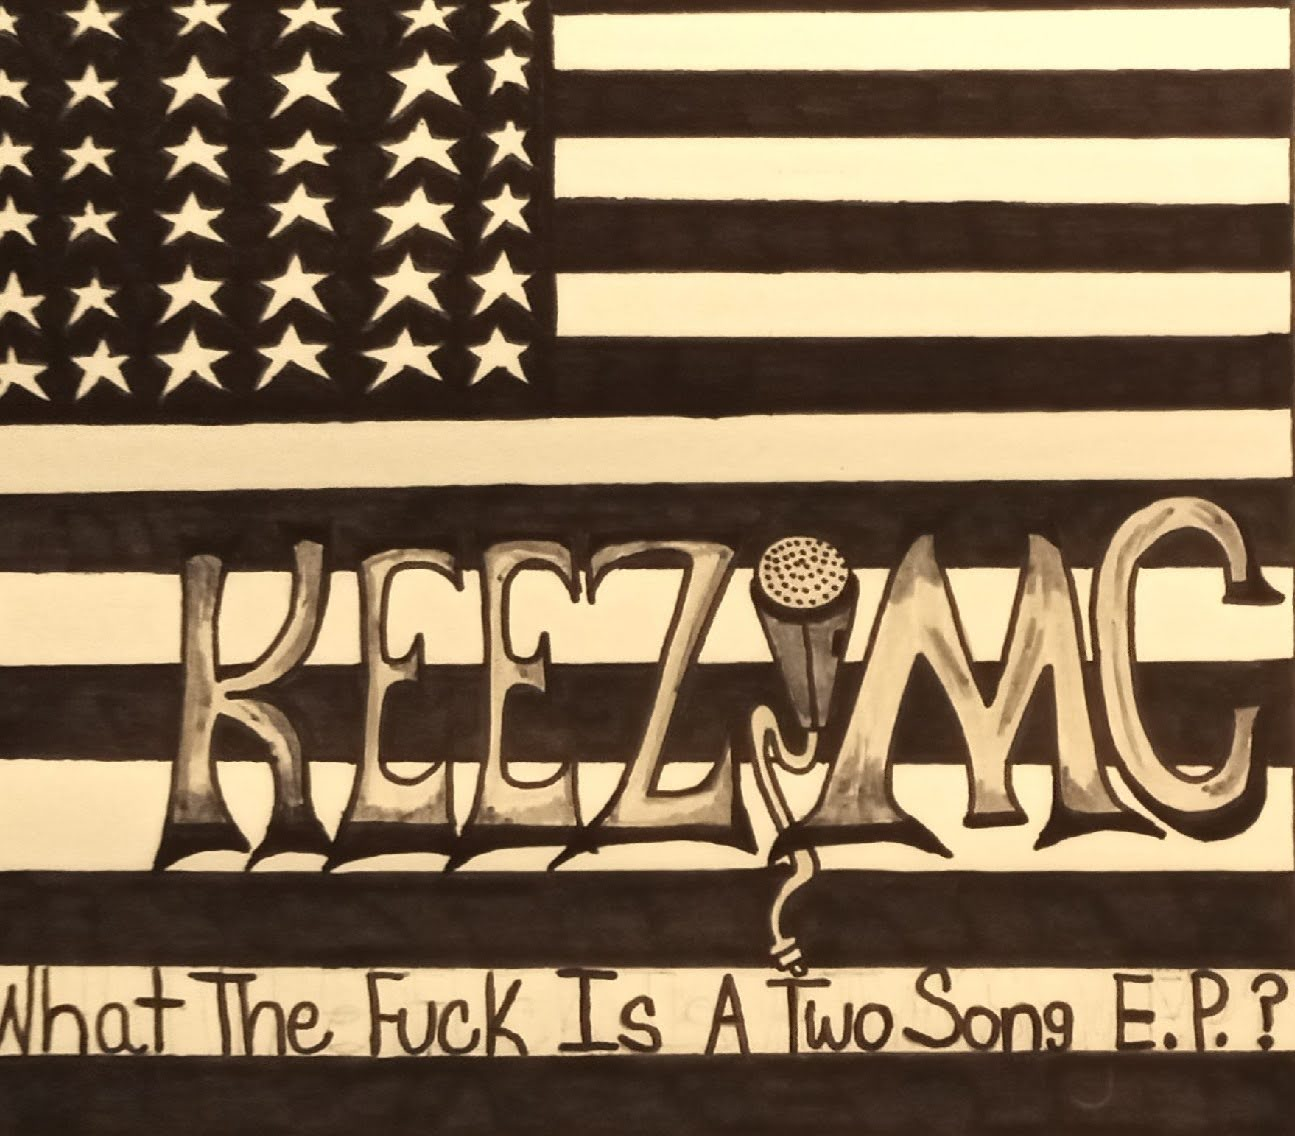 Keez MC Releases New Music Project, 'What The F**k Is A Two Song E.P?'